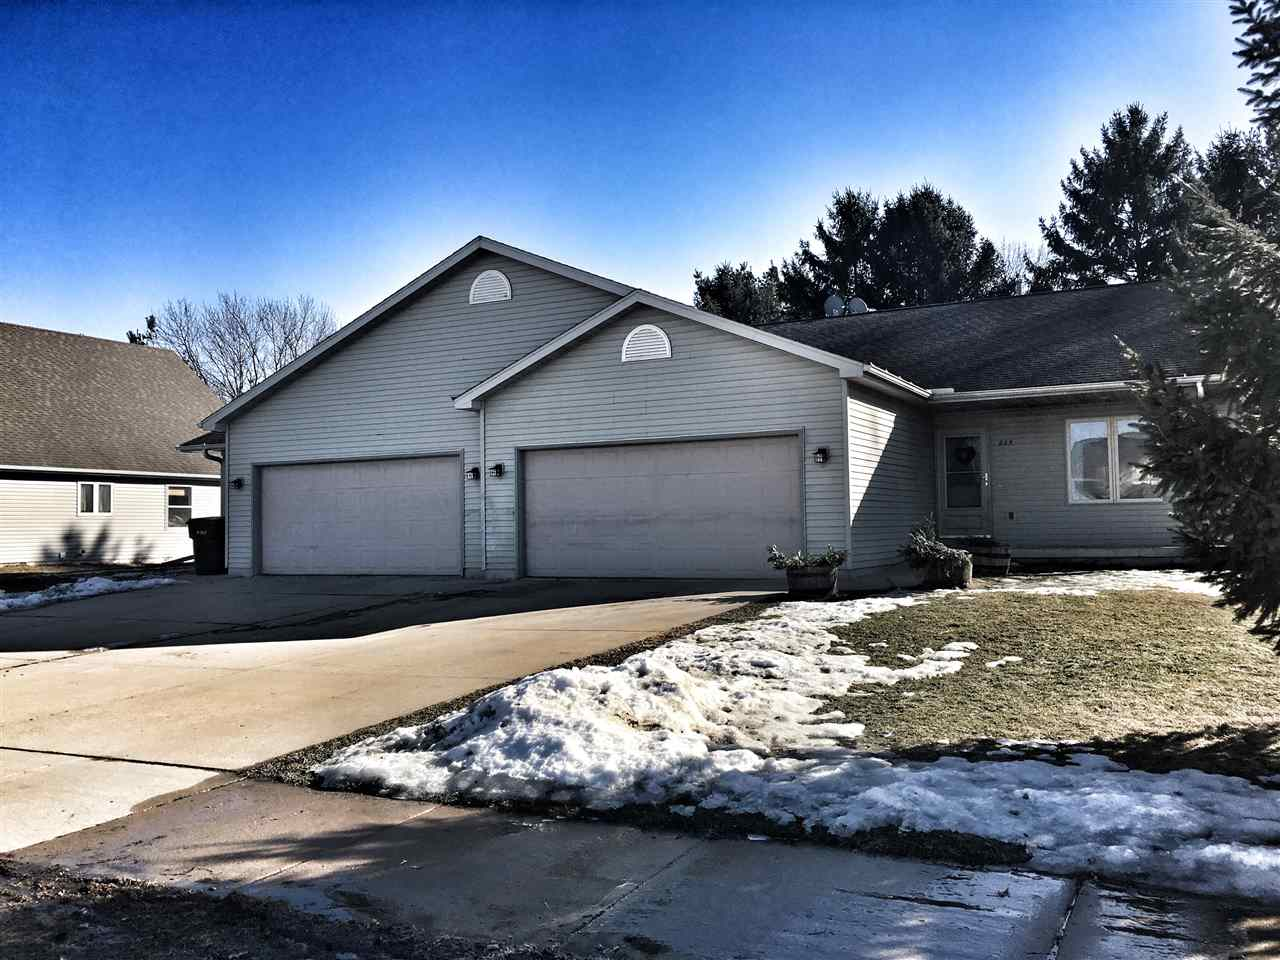 223-225 DIVISION ST, Brooklyn, WI 53521